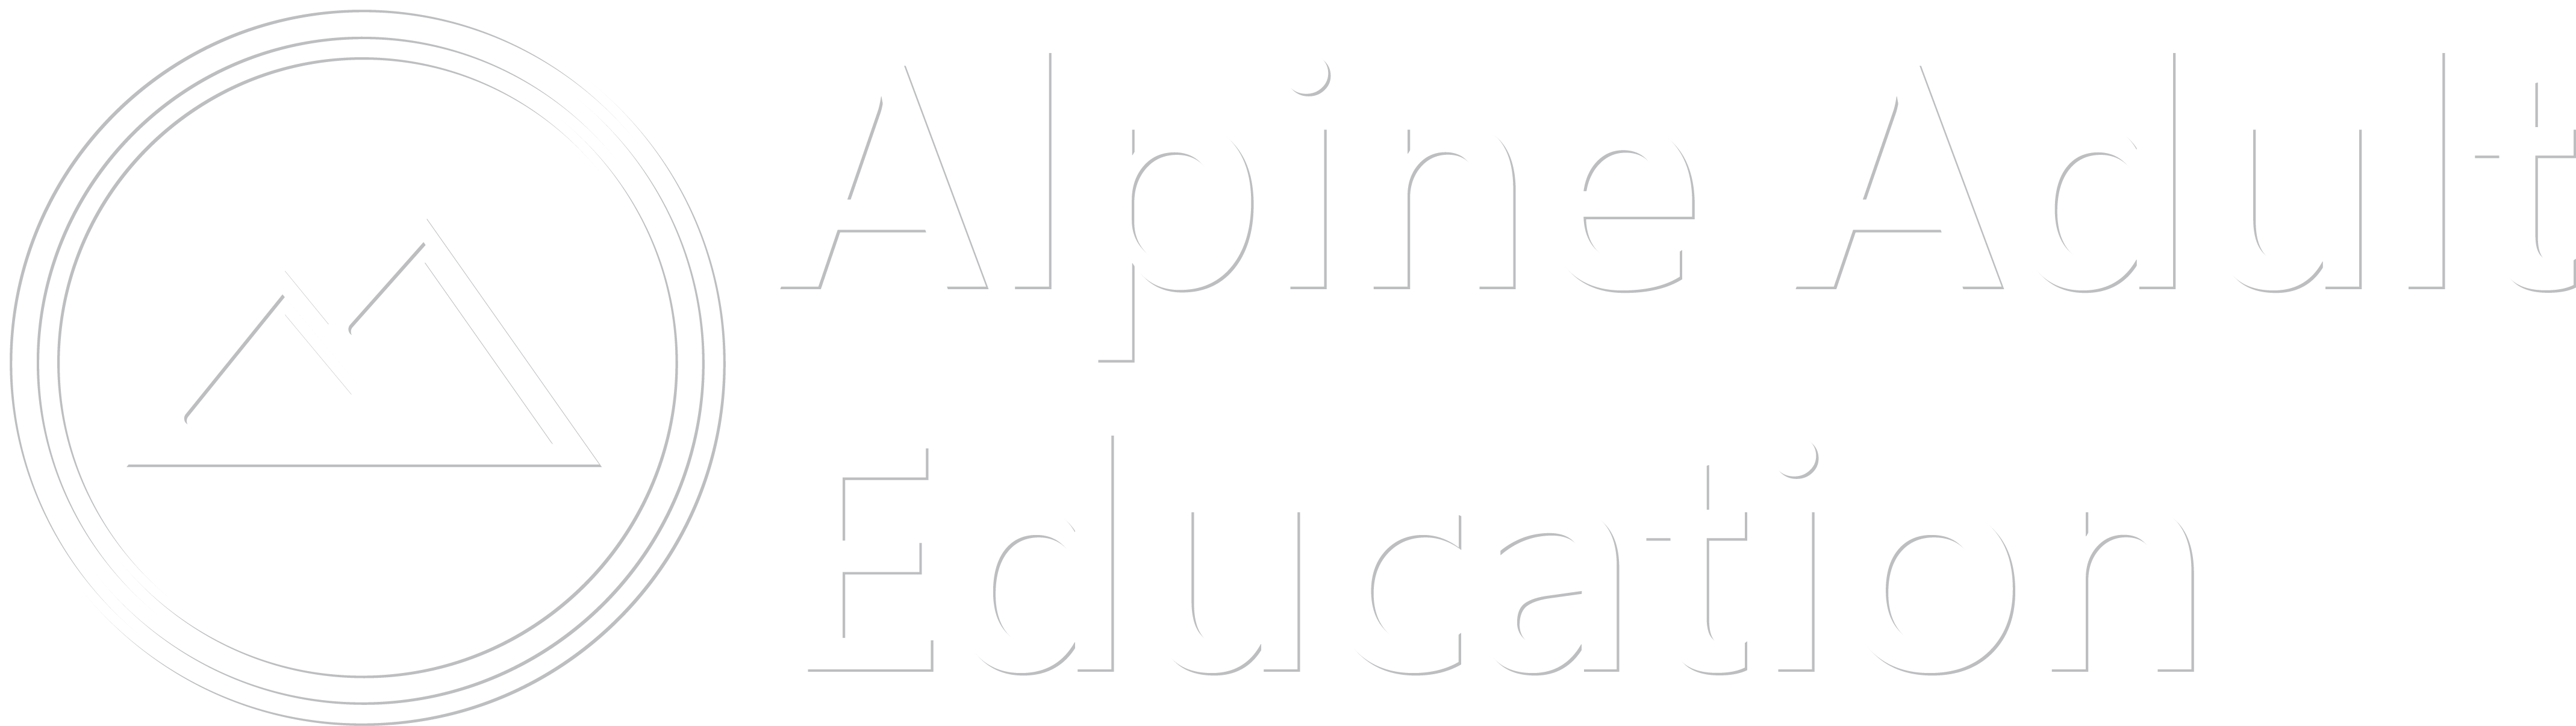 Alpine Adult Education